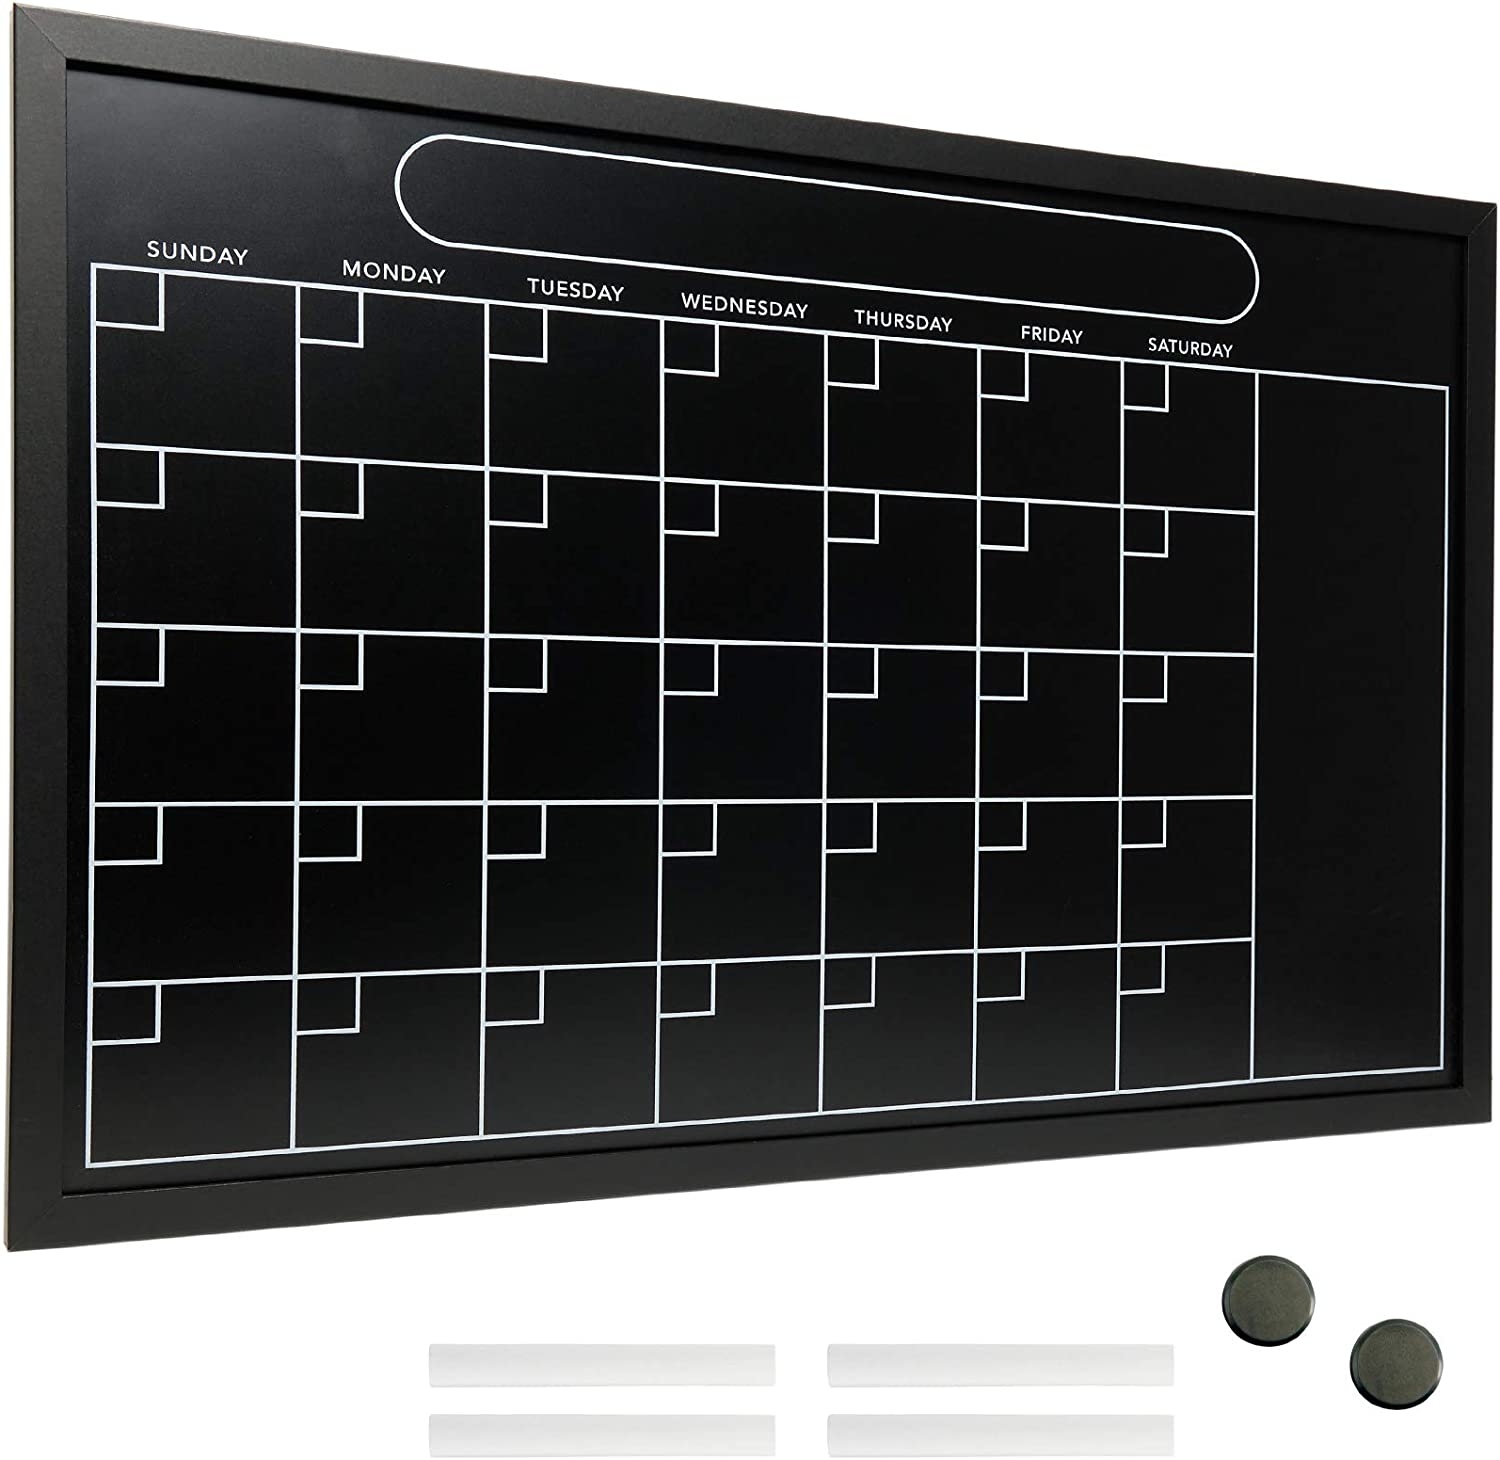 "Magnetic Calendar Chalkboard Large 20""x30"" Black Board Weekly Monthly Format Reminder Note Section Office School Planner Erasable Wall Mounted"